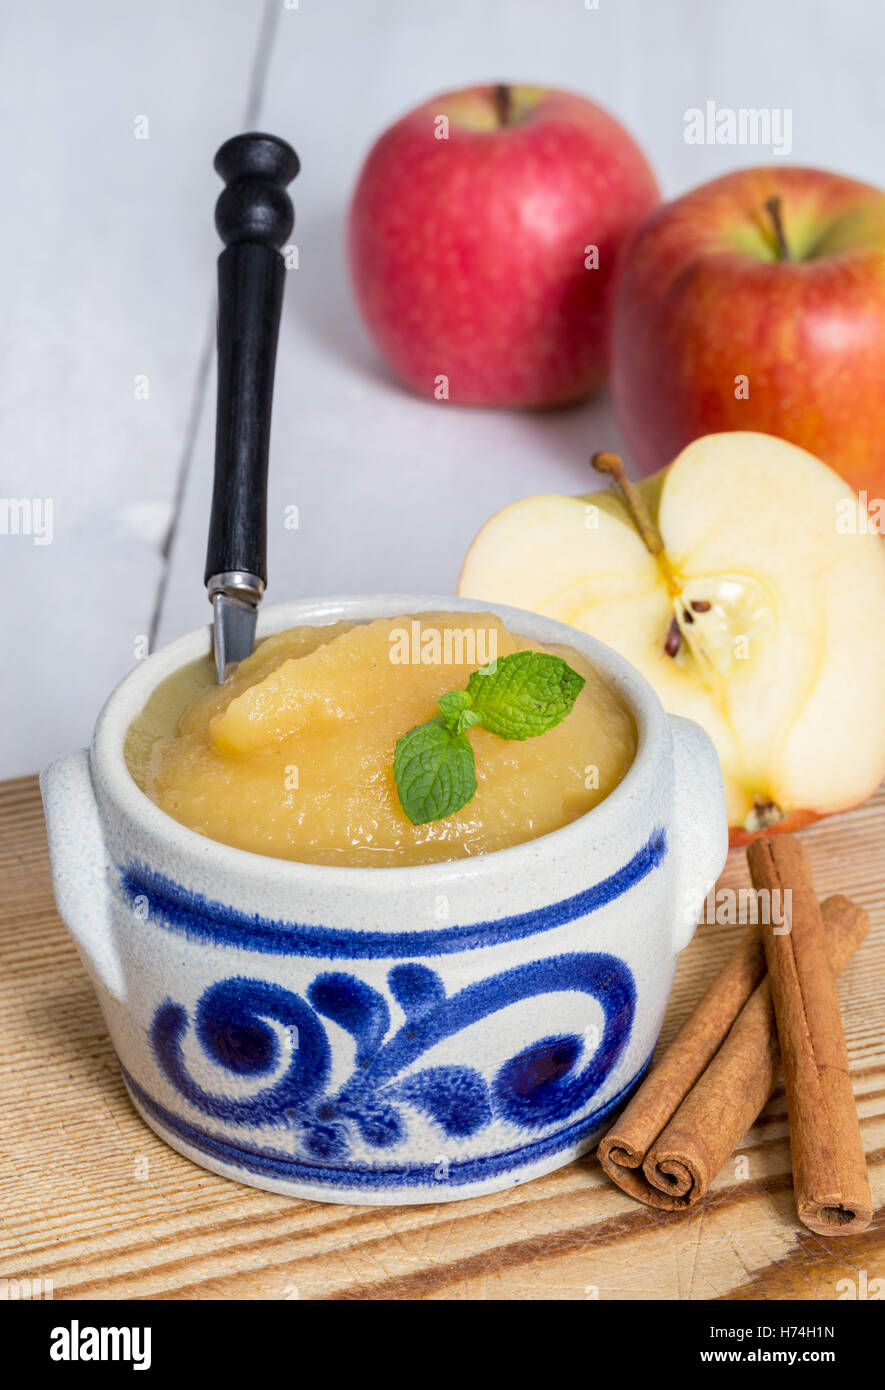 applesauce with cinnamon in stoneware bowl - Stock Image